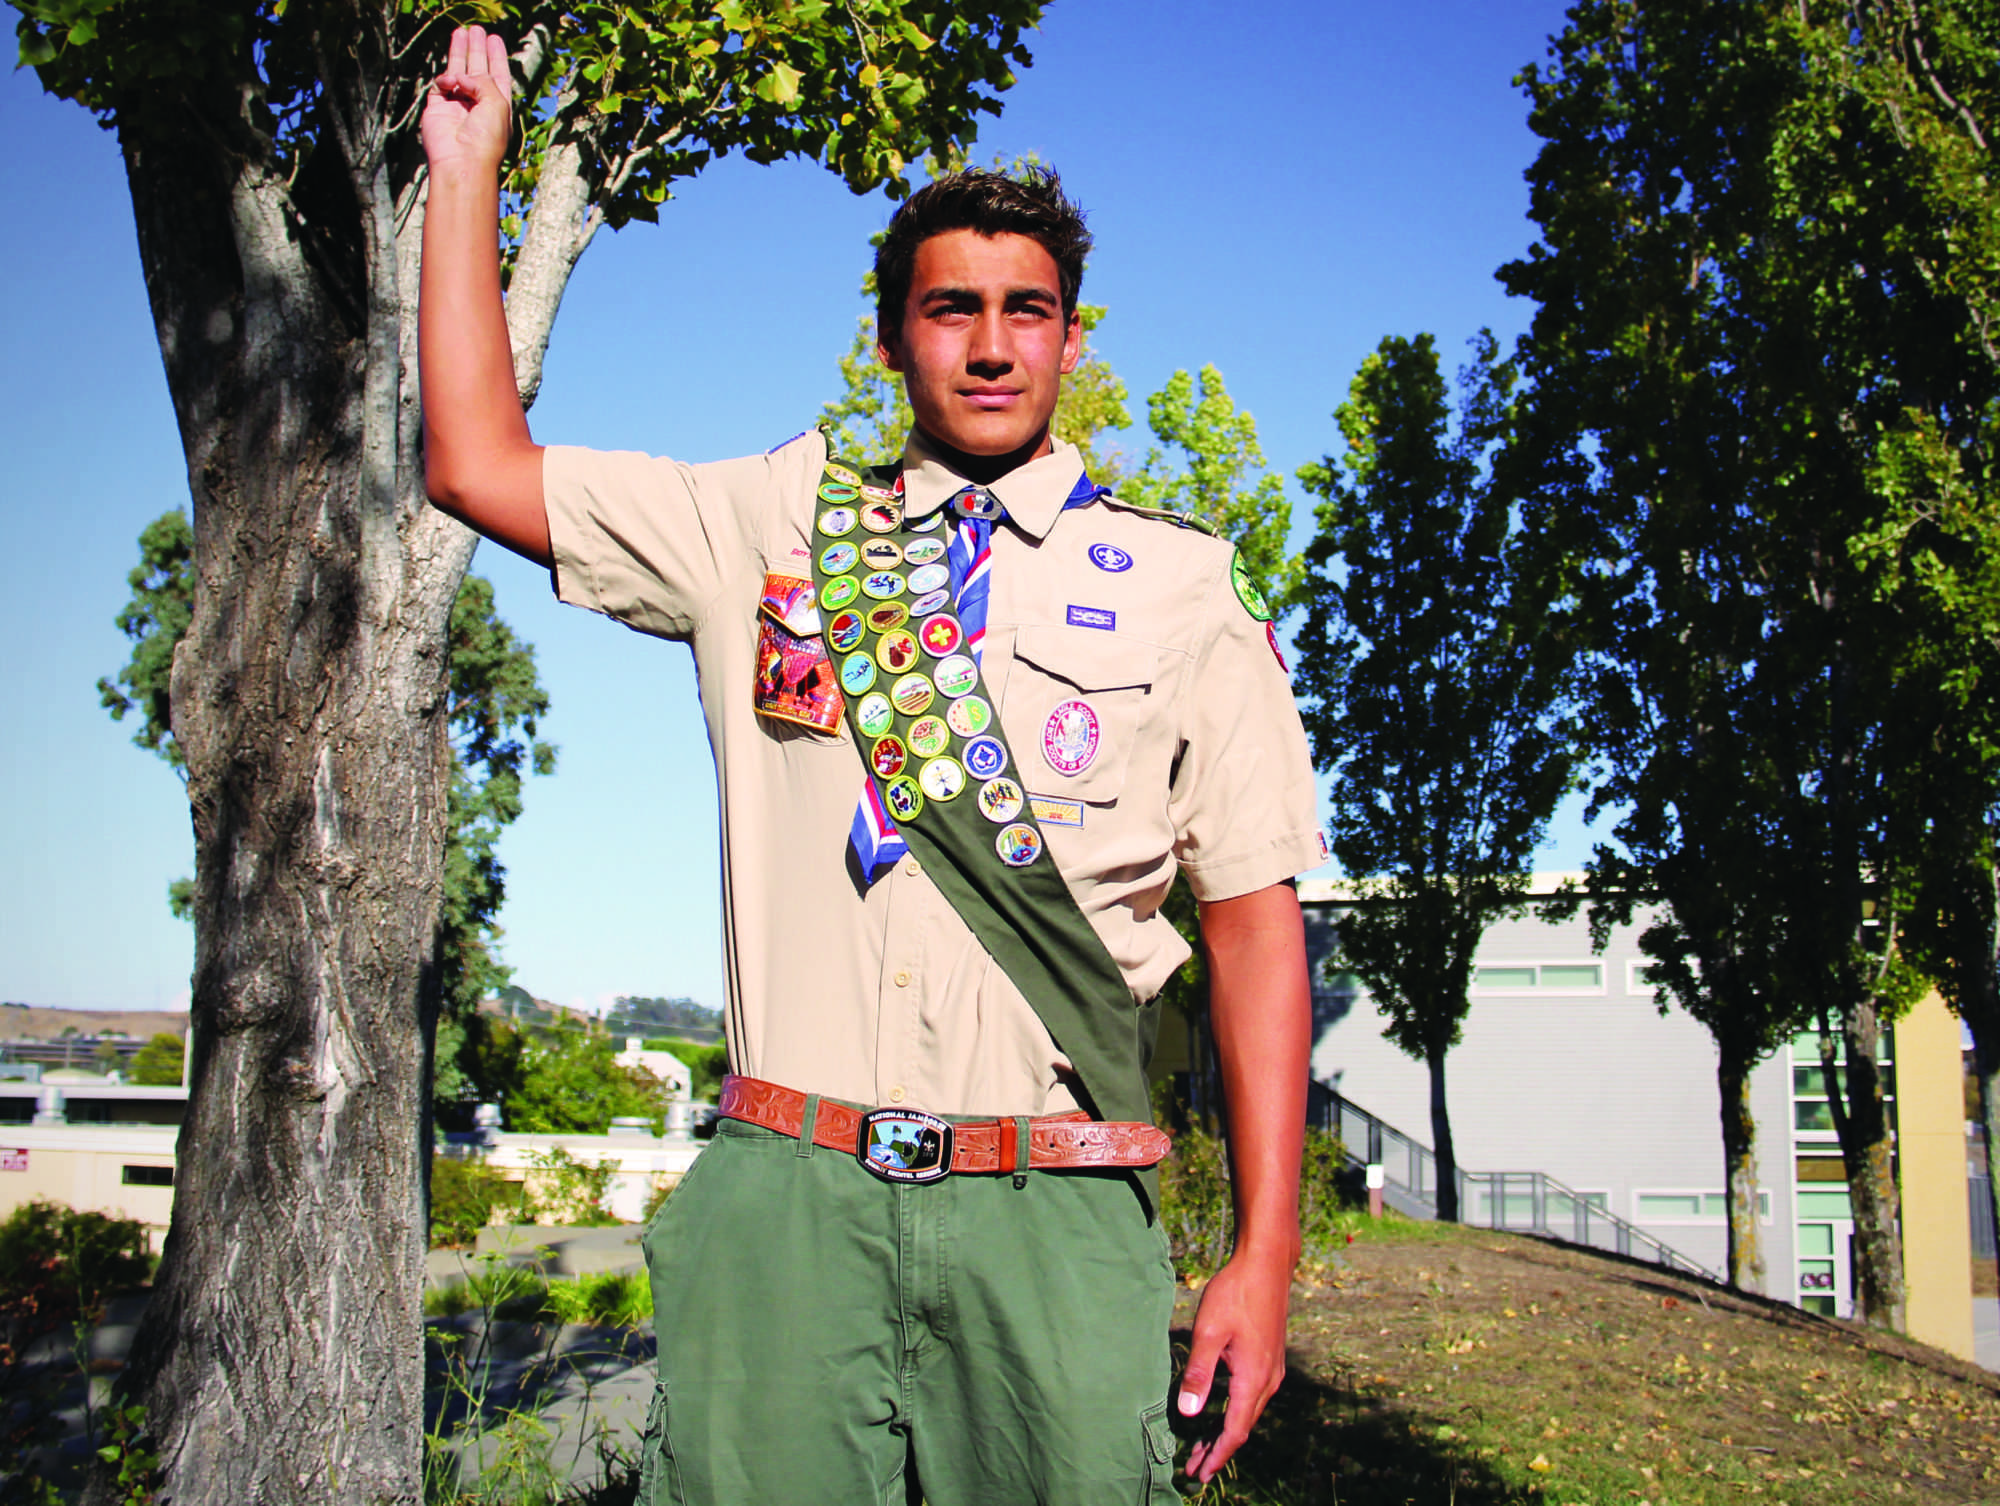 From Cub to Eagle: A Boy Scout's journey